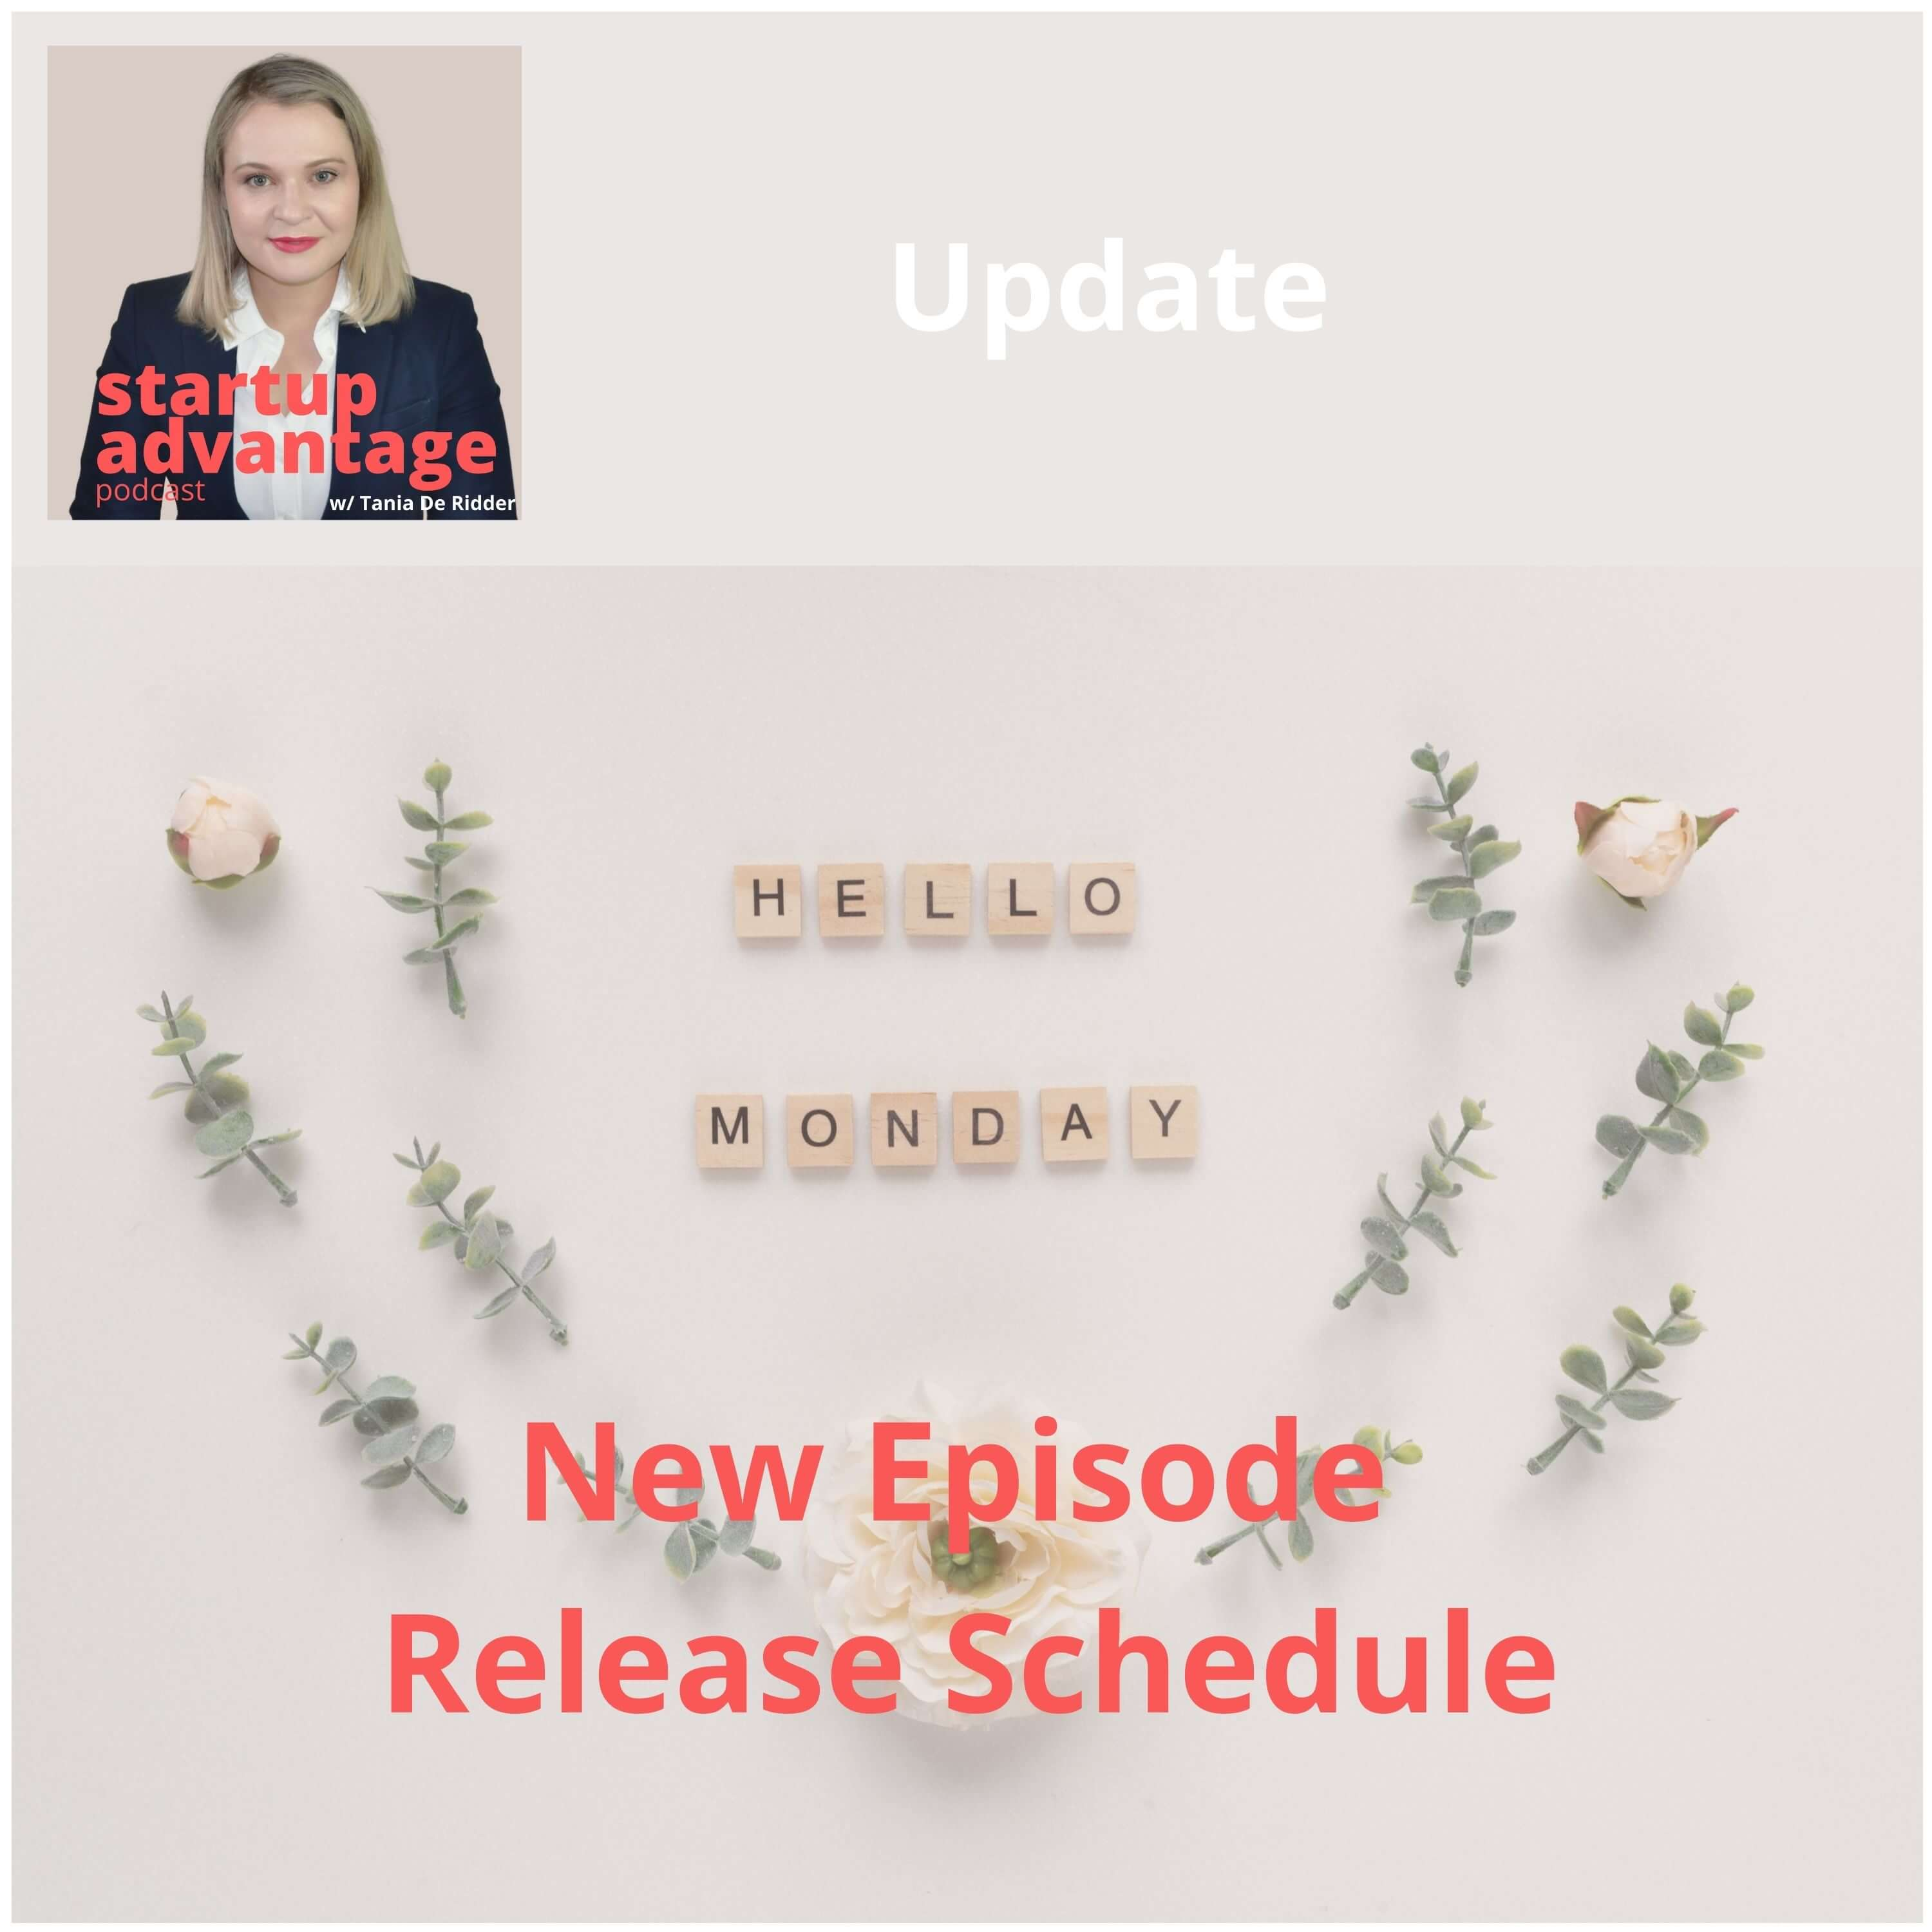 New Episode Release Schedule: Join Me On Mondays